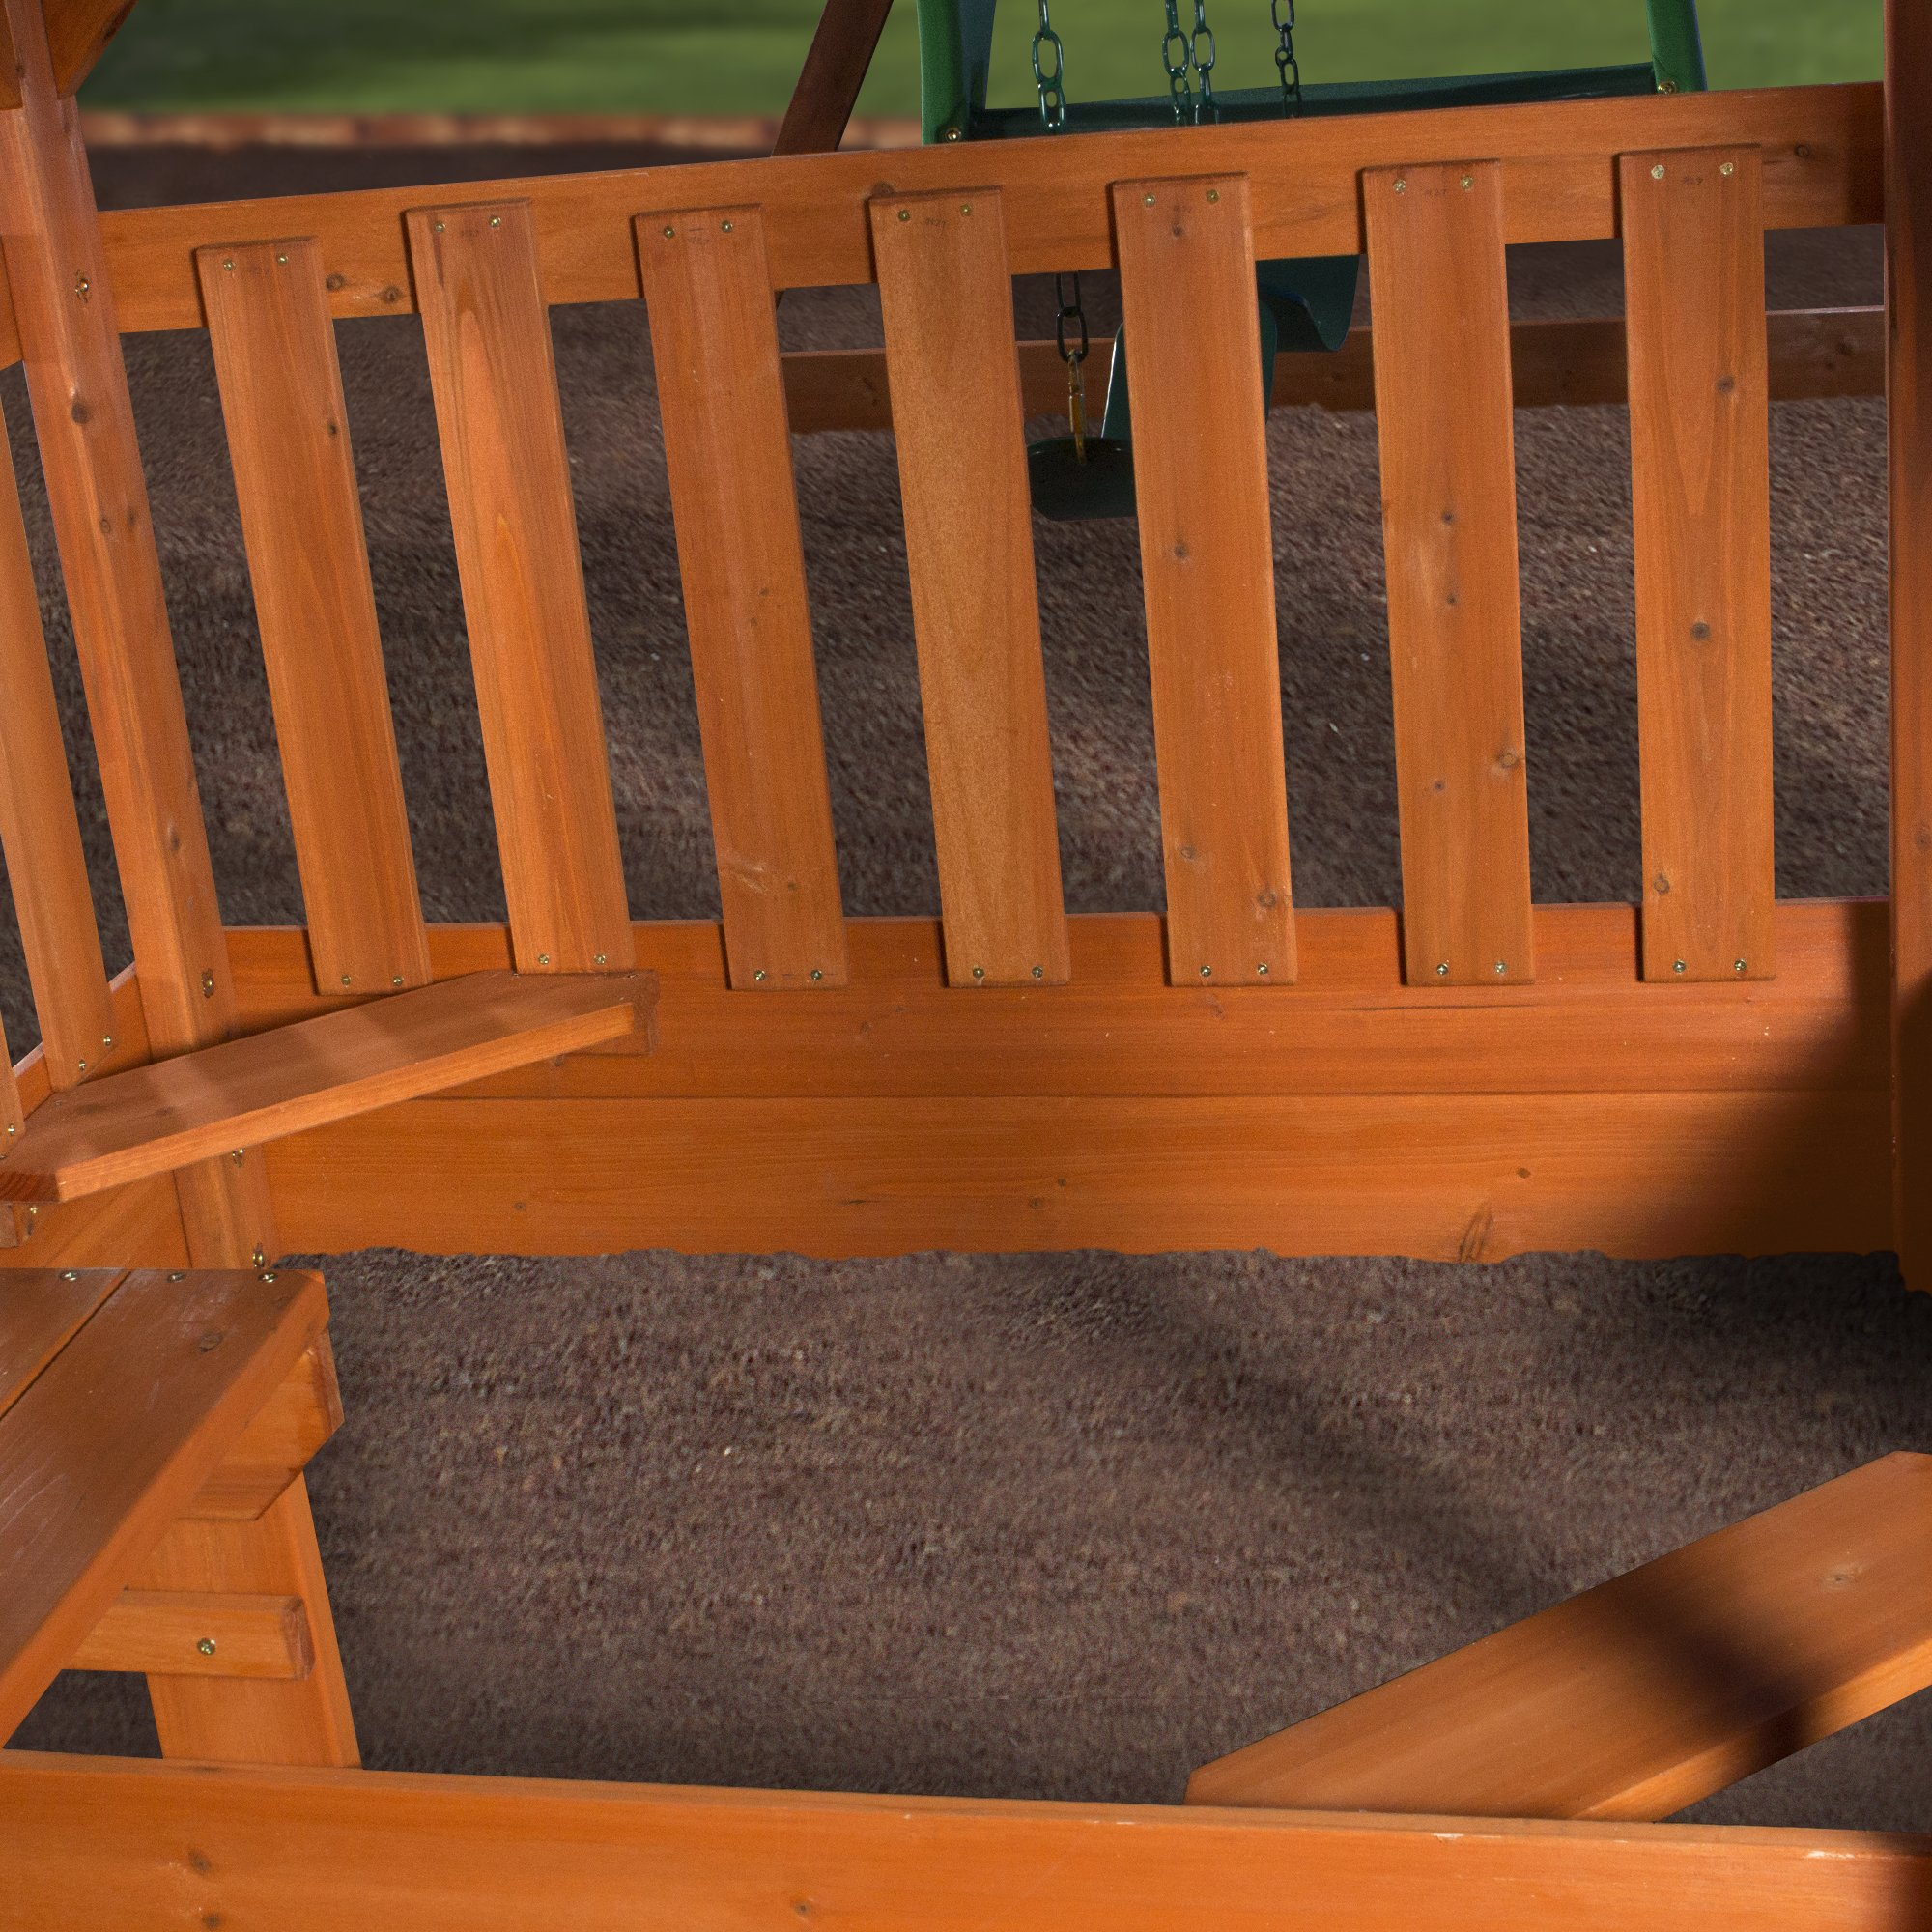 Backyard Discovery Pacific View All Cedar Wood Playset Swing Set by Backyard Discovery (Image #7)